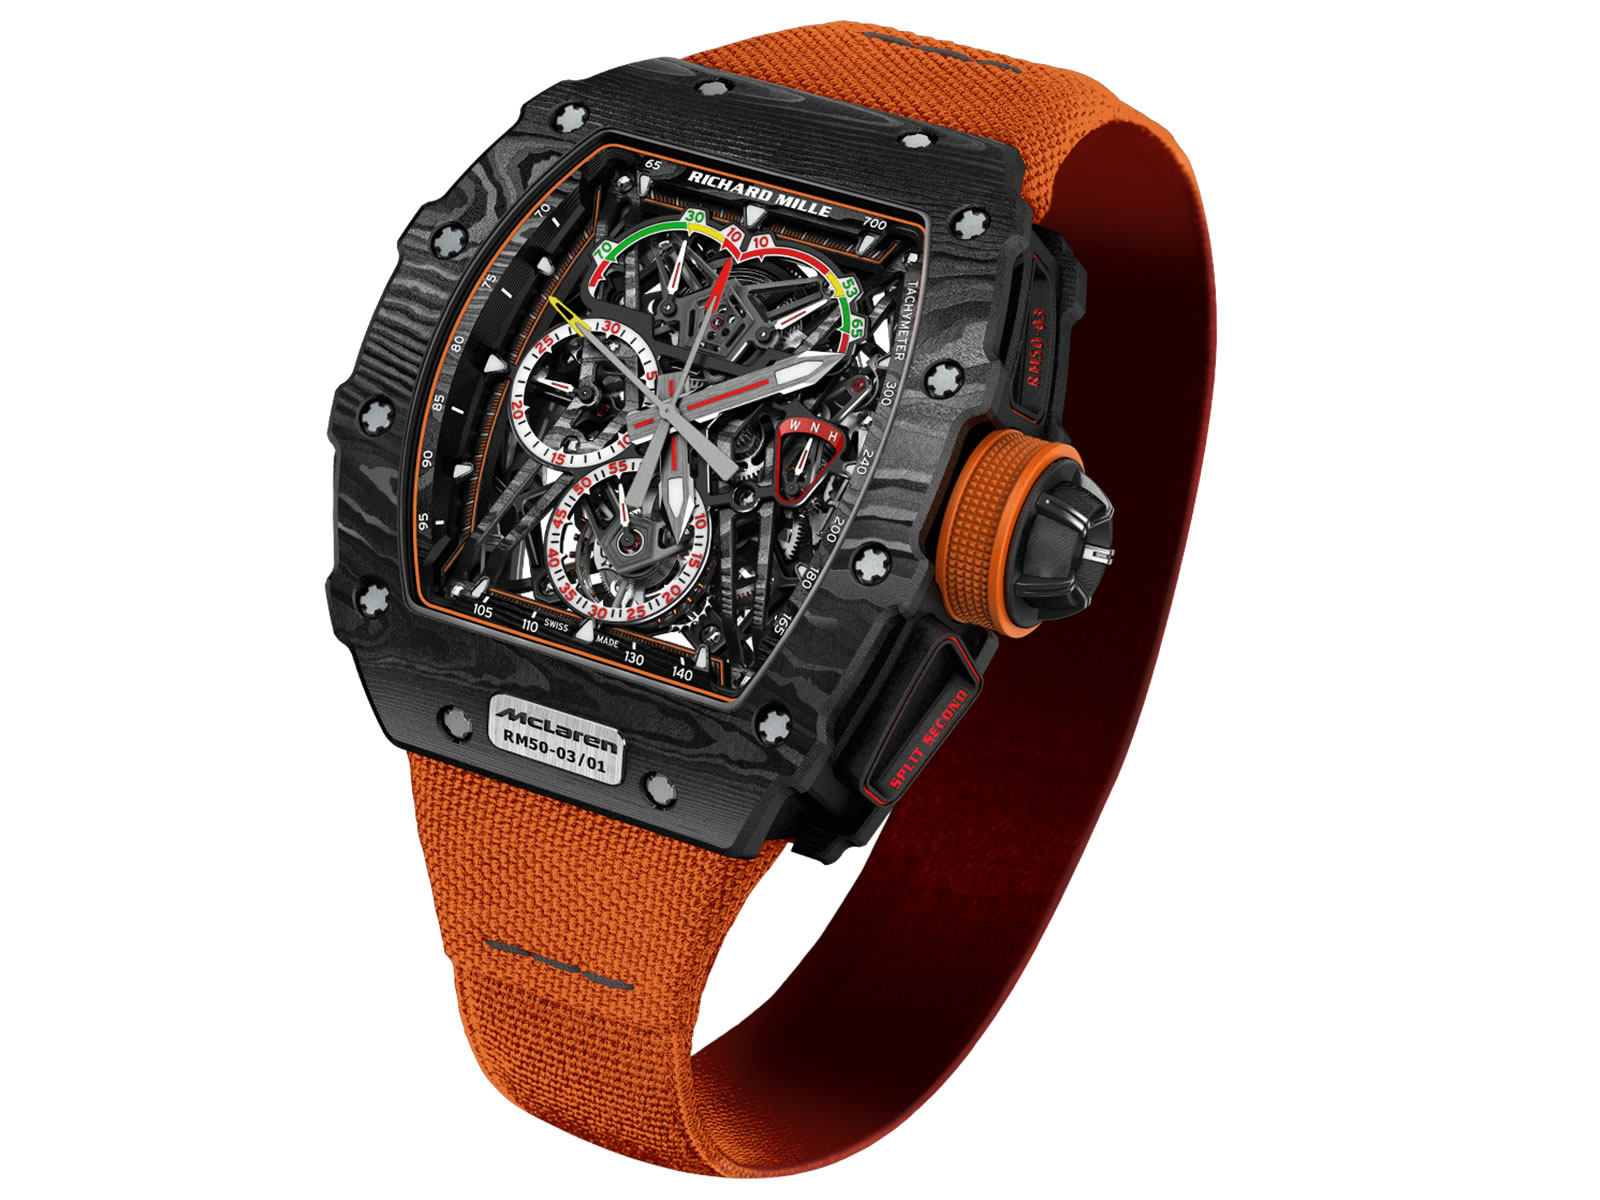 richard-mille-rm-50-03-tourbillon-split-seconds-chronograph-ultralight-mclaren-f1-.jpg